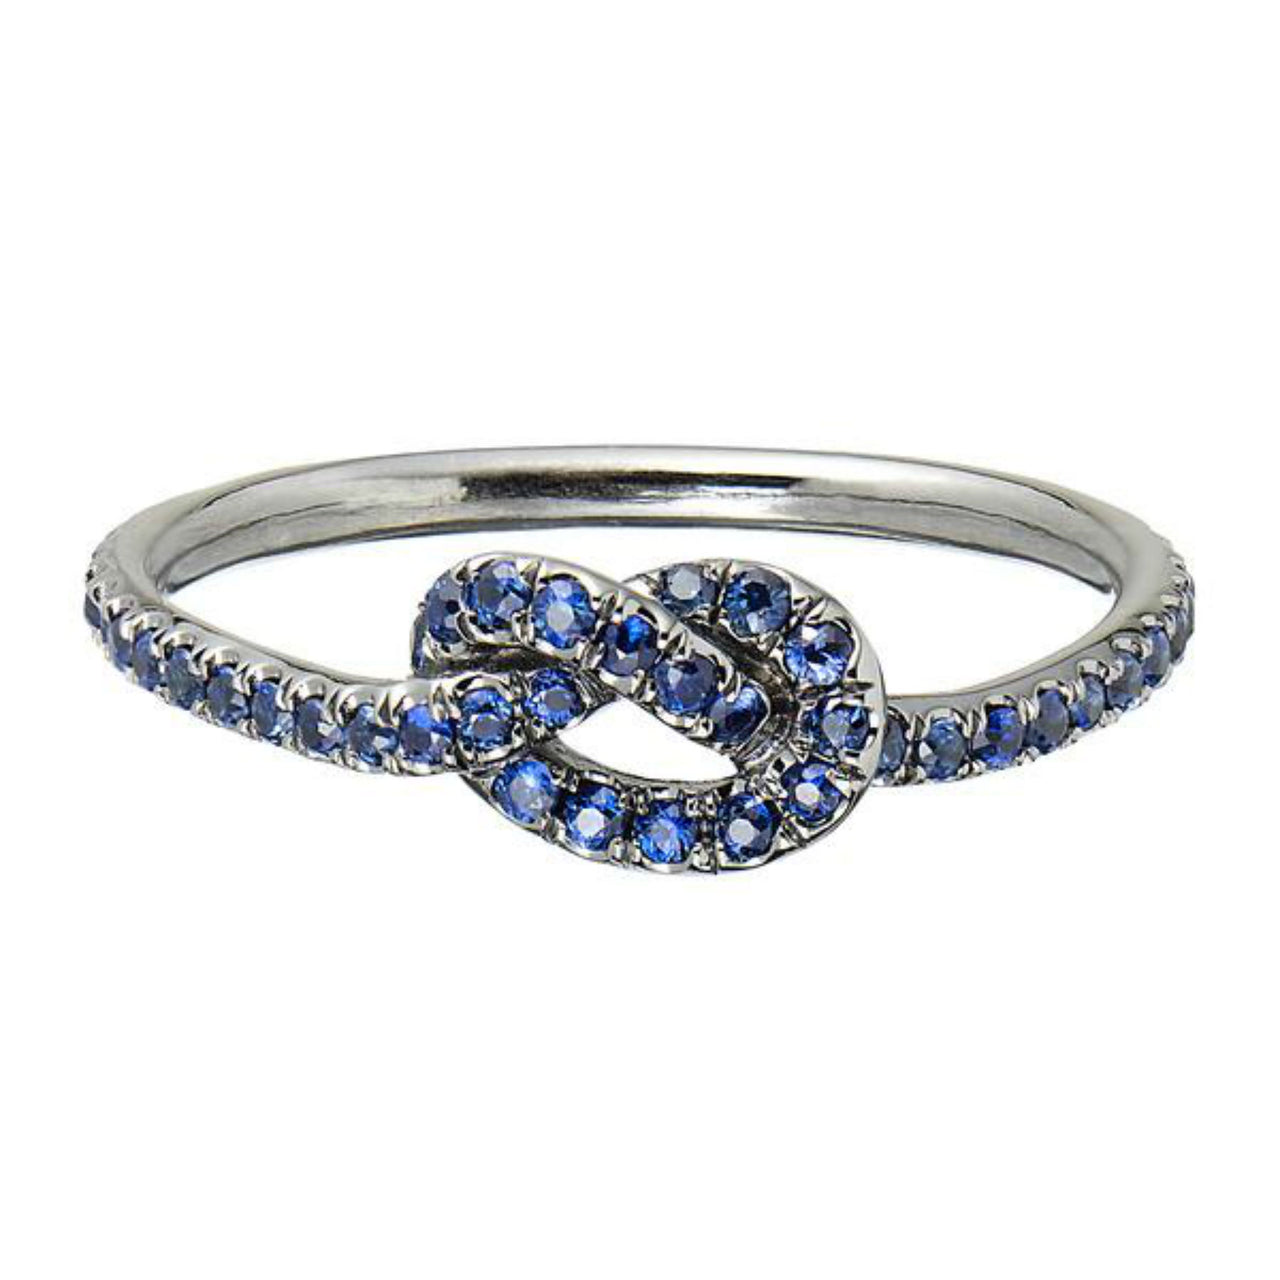 Small Cornflower Blue Love Knot Ring